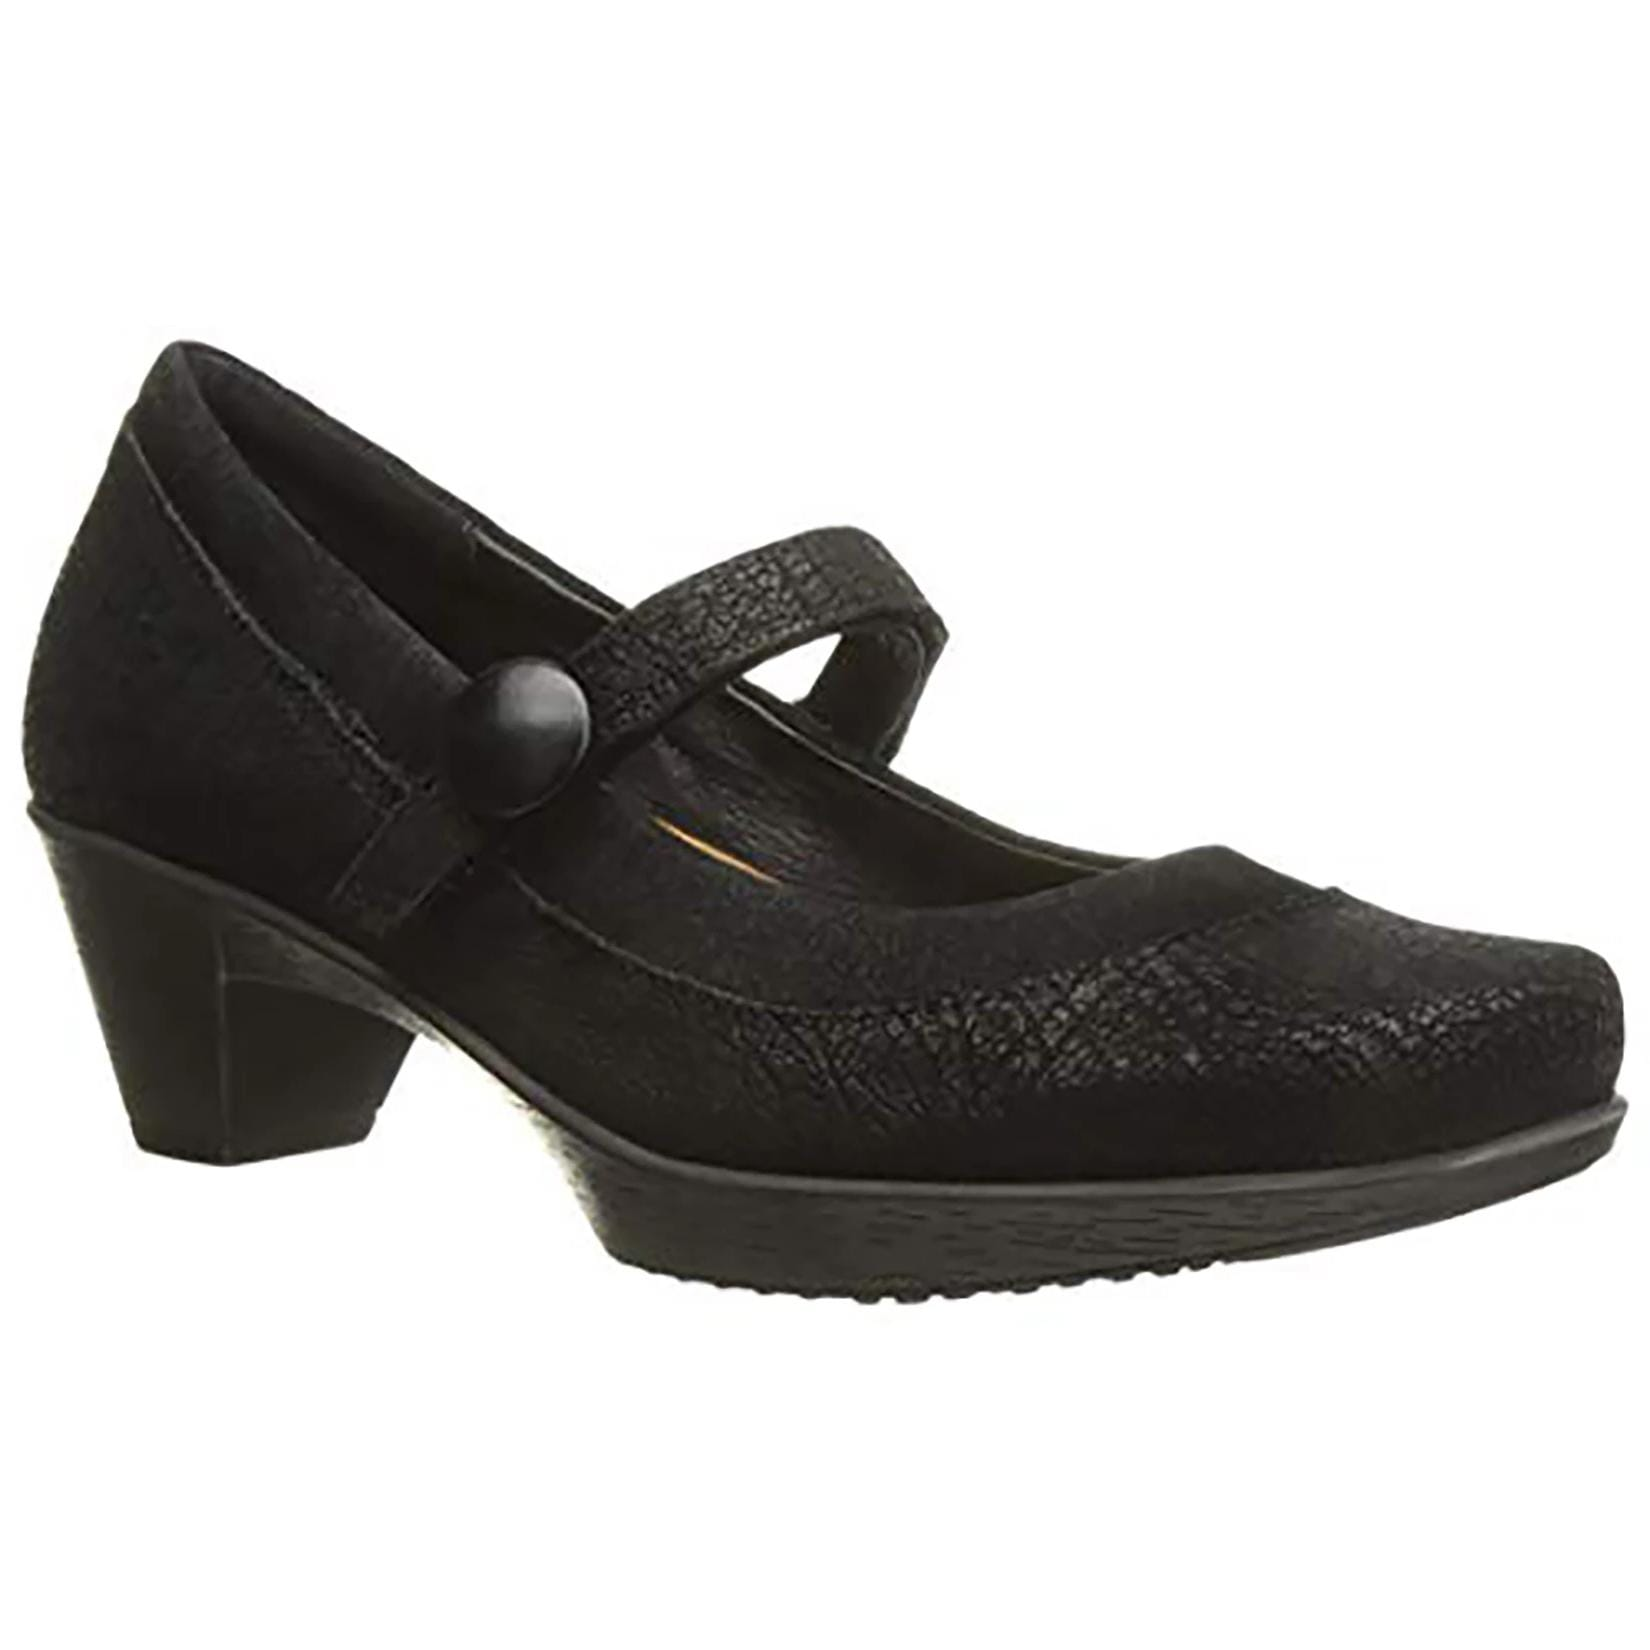 Naot Latest Mary Jane Heel | Women's Leather Comfy Pump | Simons Shoes